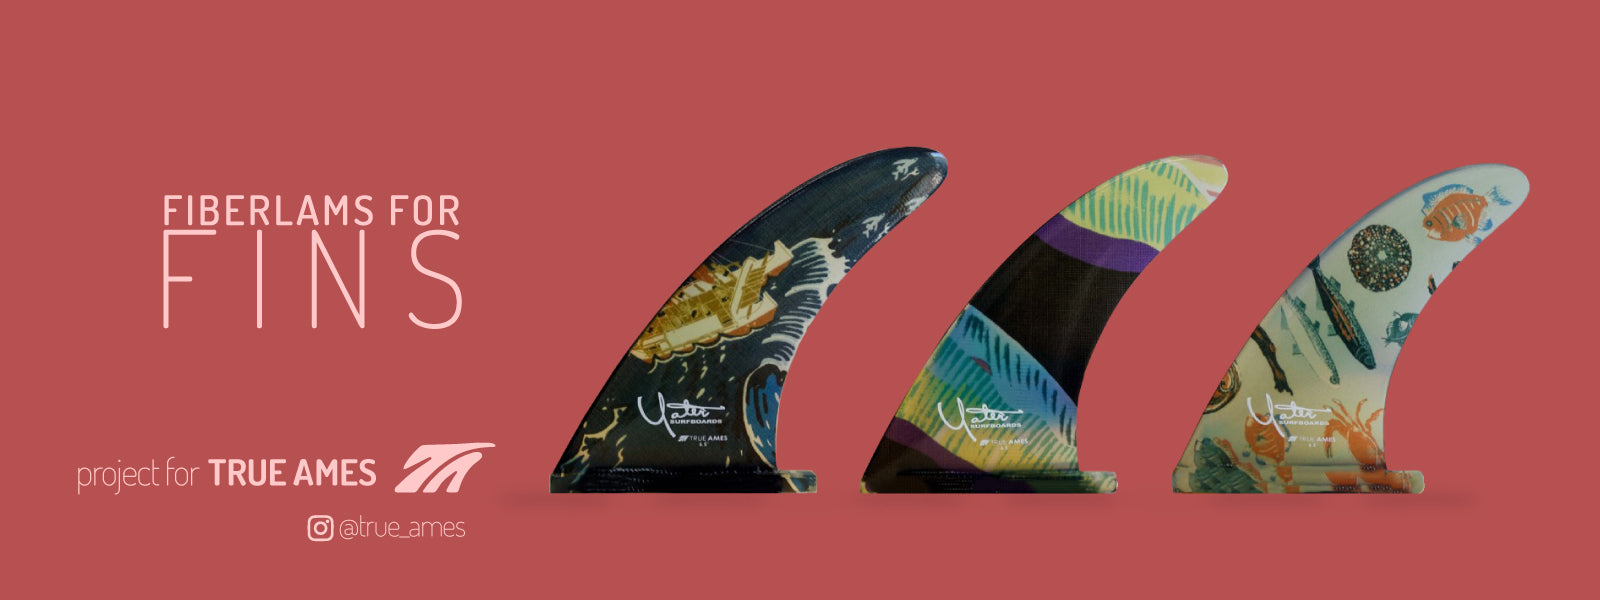 BoardLams + True Ames - Printed Fiberglass for fins